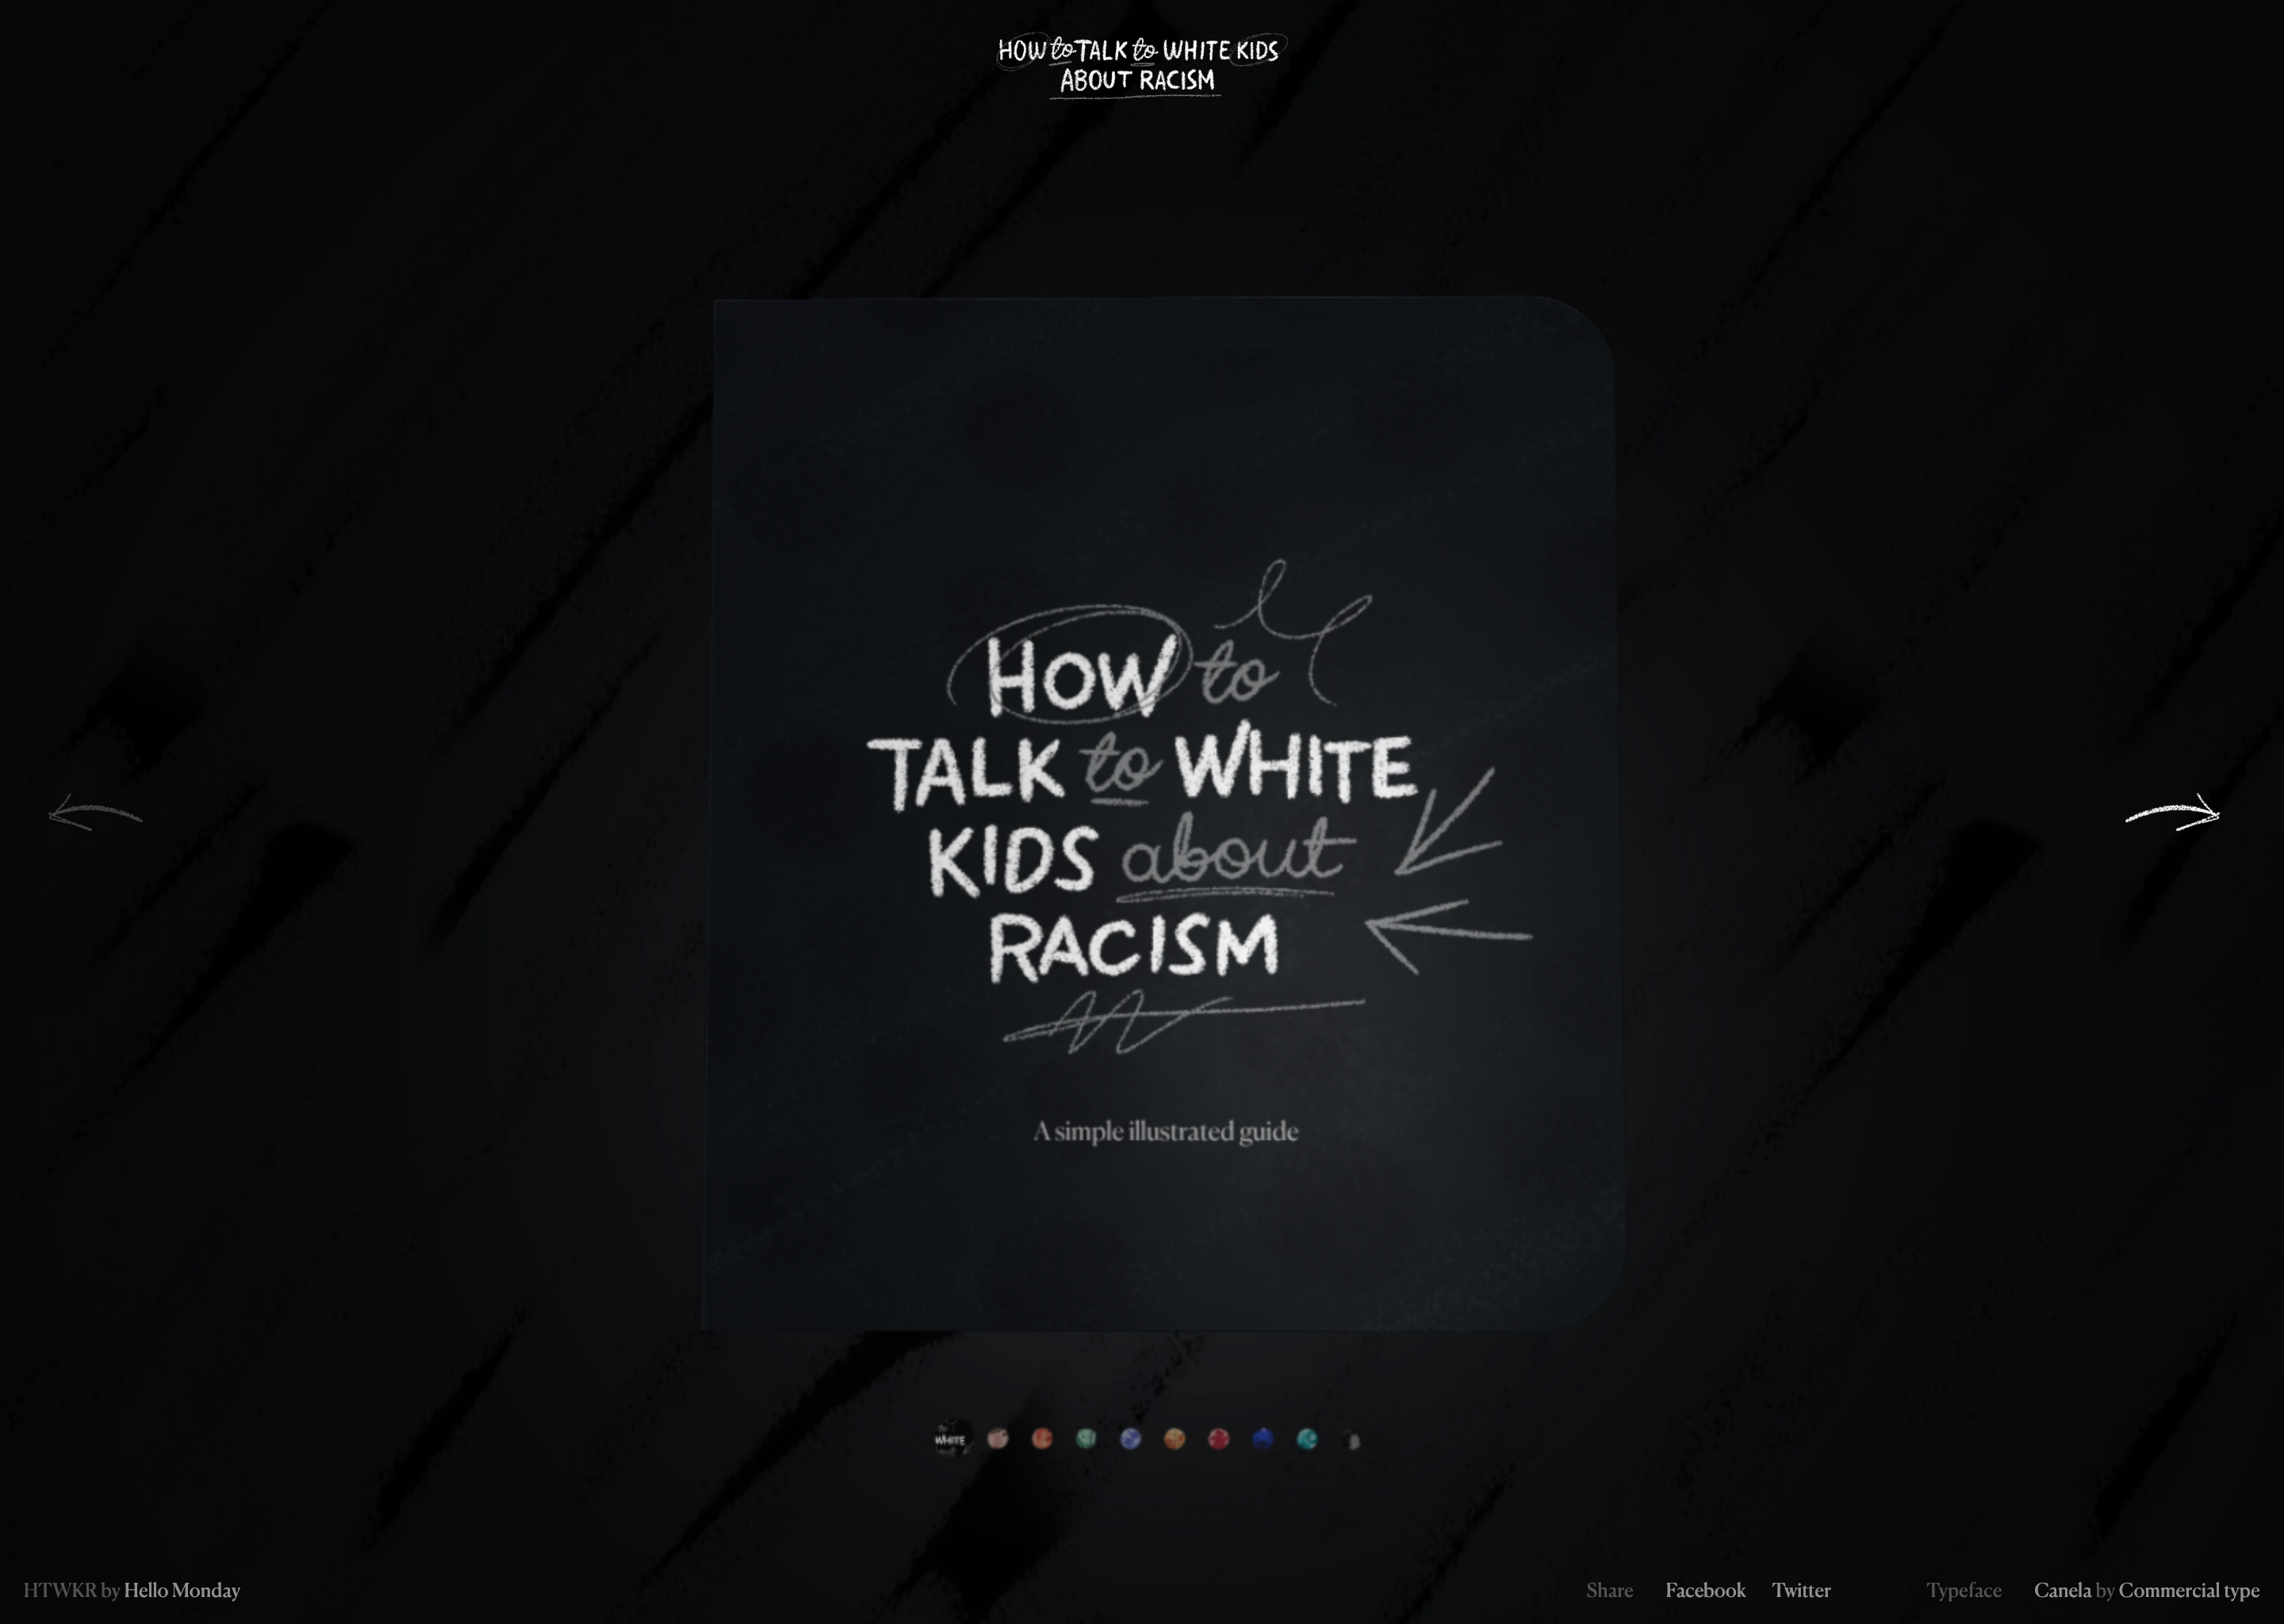 How to Talk to White Kids about Racism